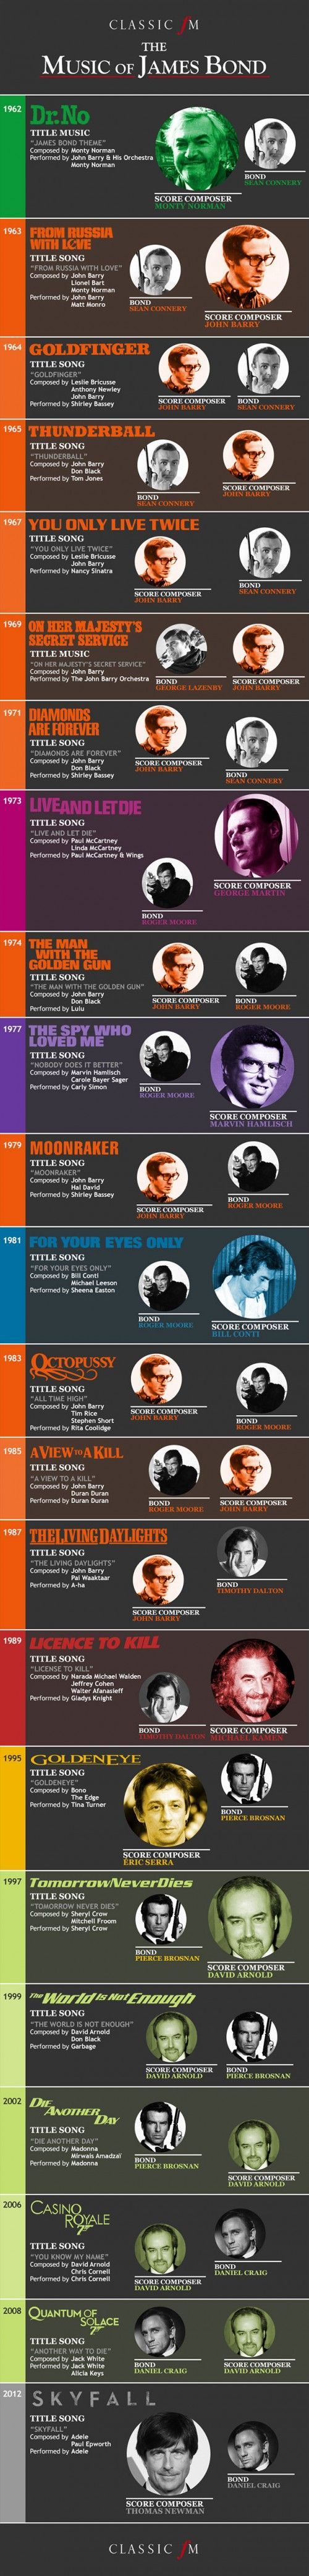 The theme music to a James Bond film is an integral part of the experience and the title song is an iconic aspect of most of the films. With Adele's 'Skyfall' being the latest offering, this infographic takes a look at the theme music and the composers of the score over all of the bond films. The Shirley Bassey title songs are the stand out ones for me. From Classic FM.